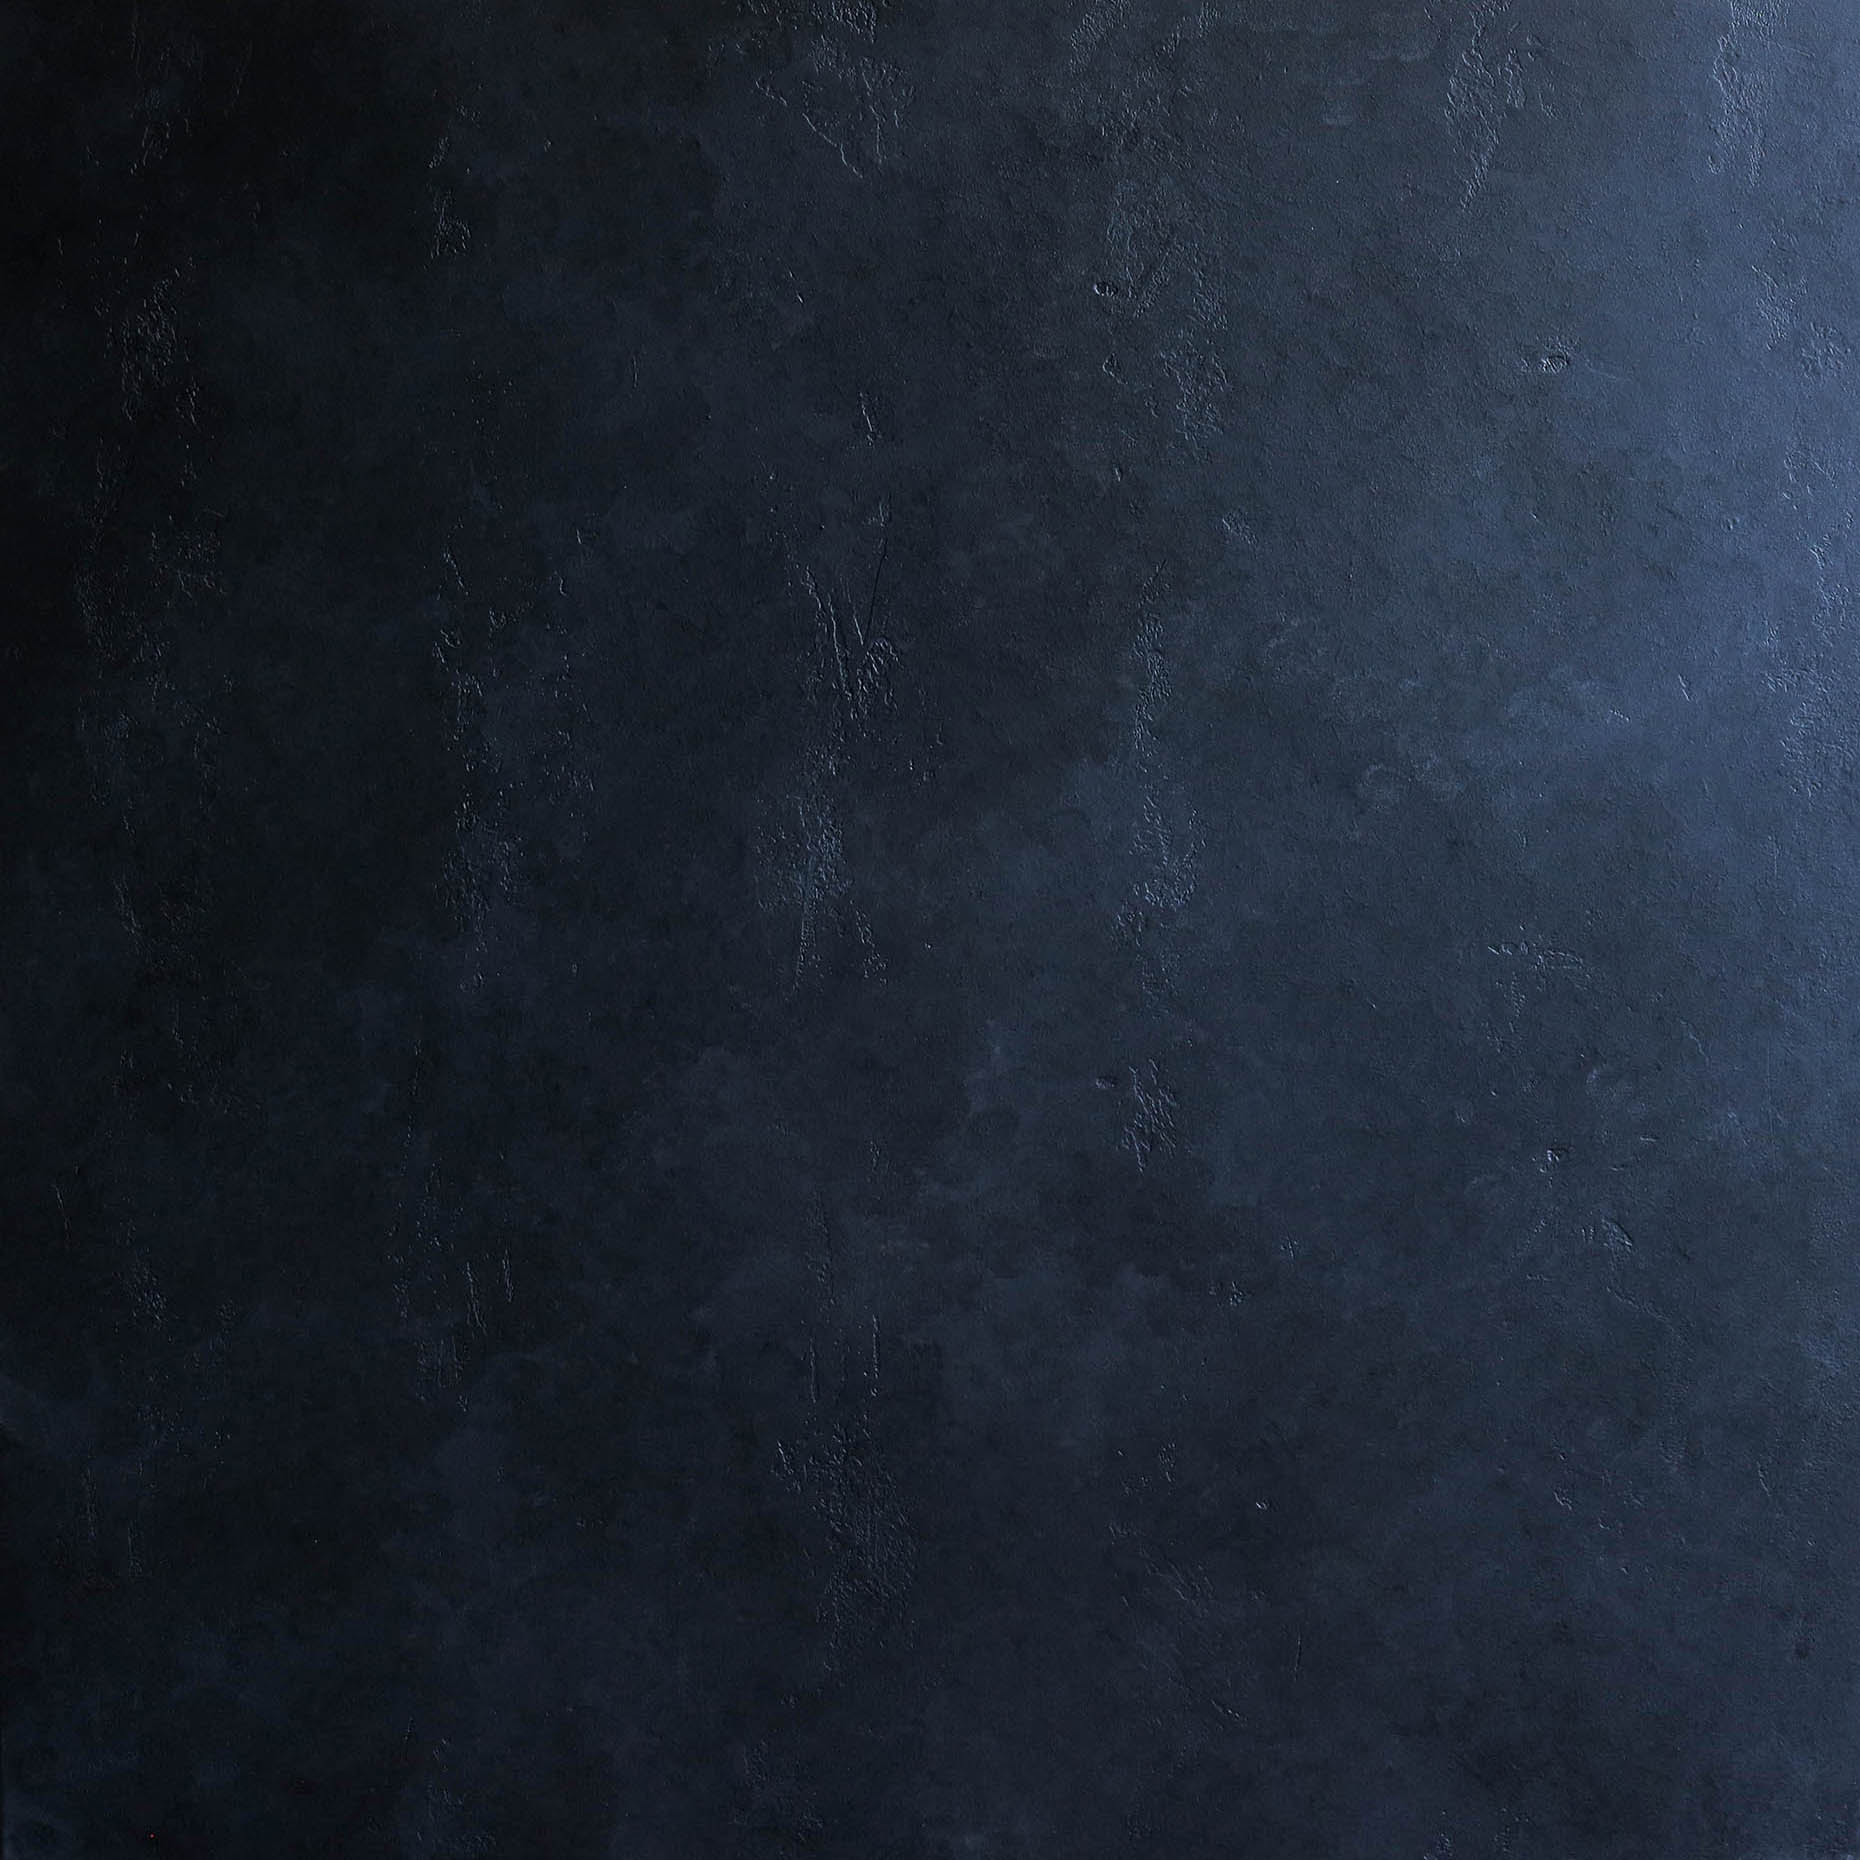 semi smooth blue black concrete background